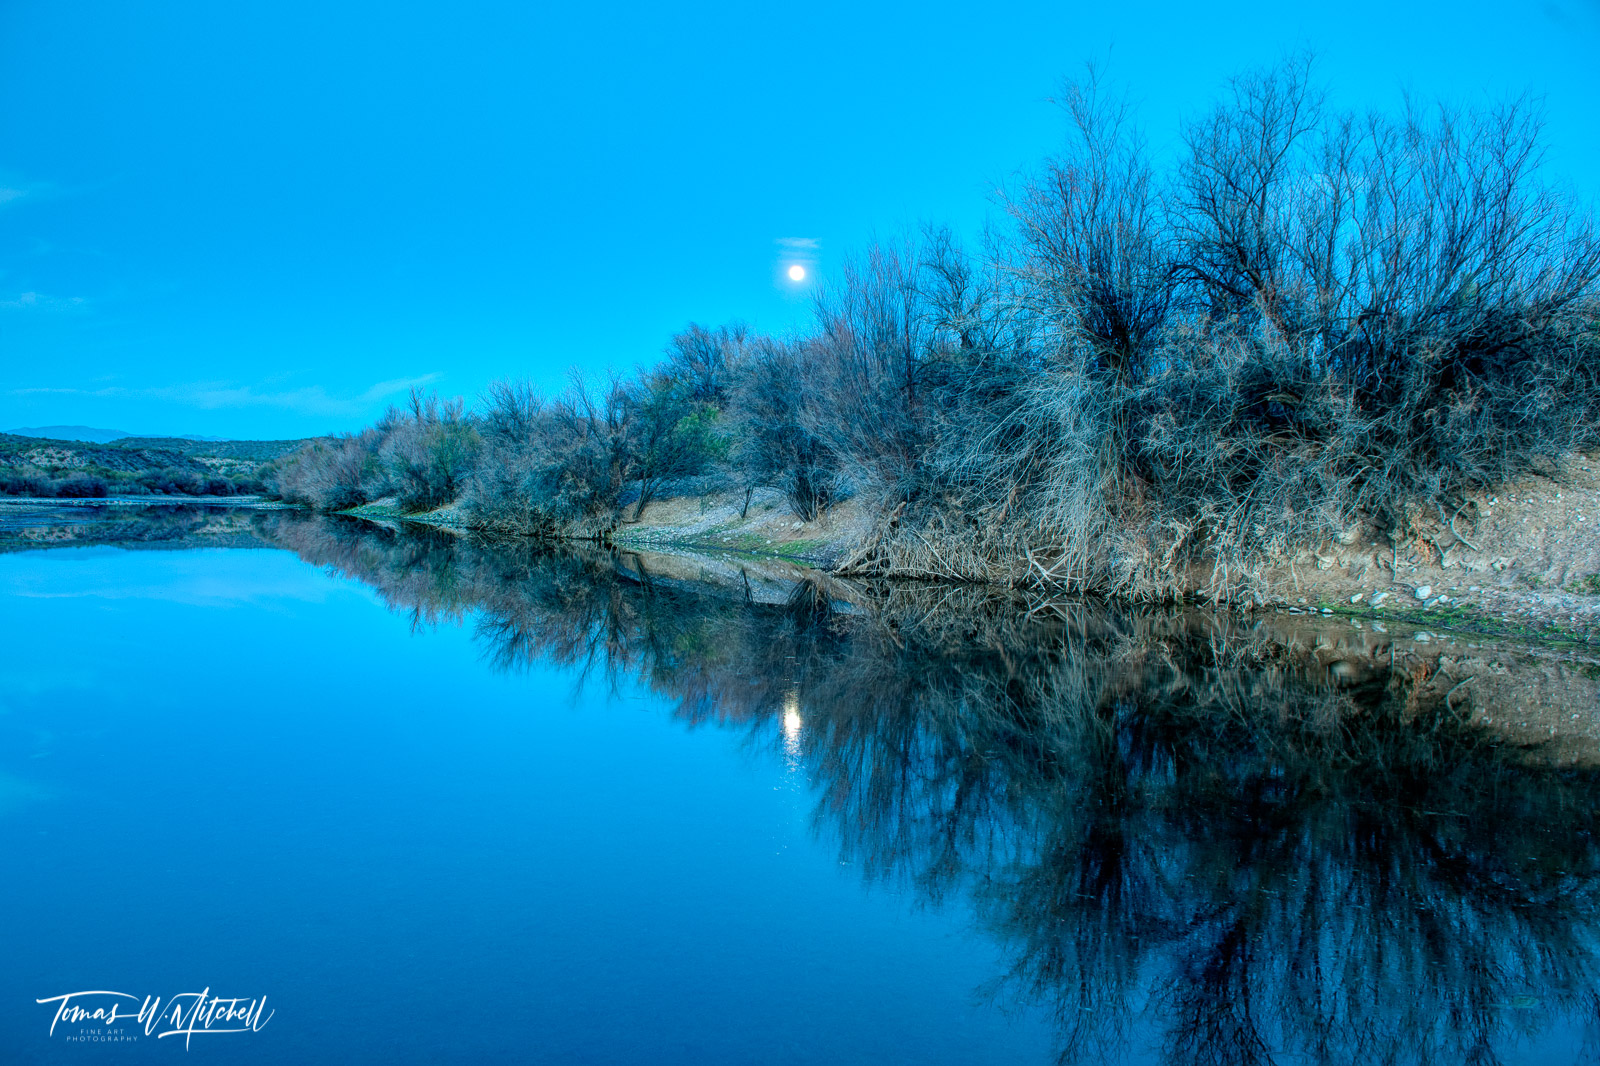 limited edition, fine art, prints, blue moon, salt river, arizona, photograph, blue hour, riverbank, reflection, water, sky, photo